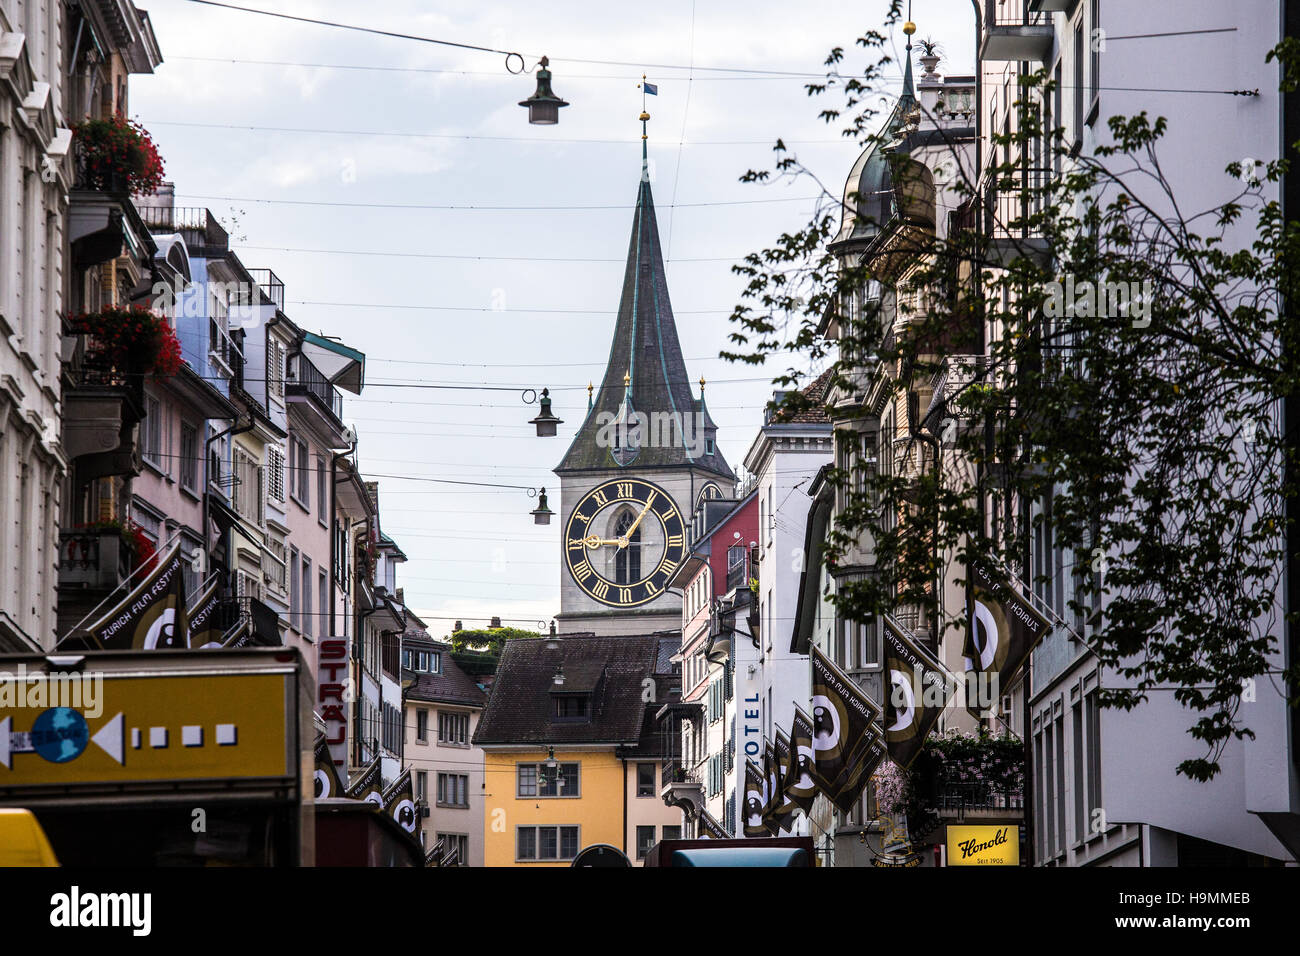 St Peter Church Clocktower in Zurich, Switzerland - Stock Image